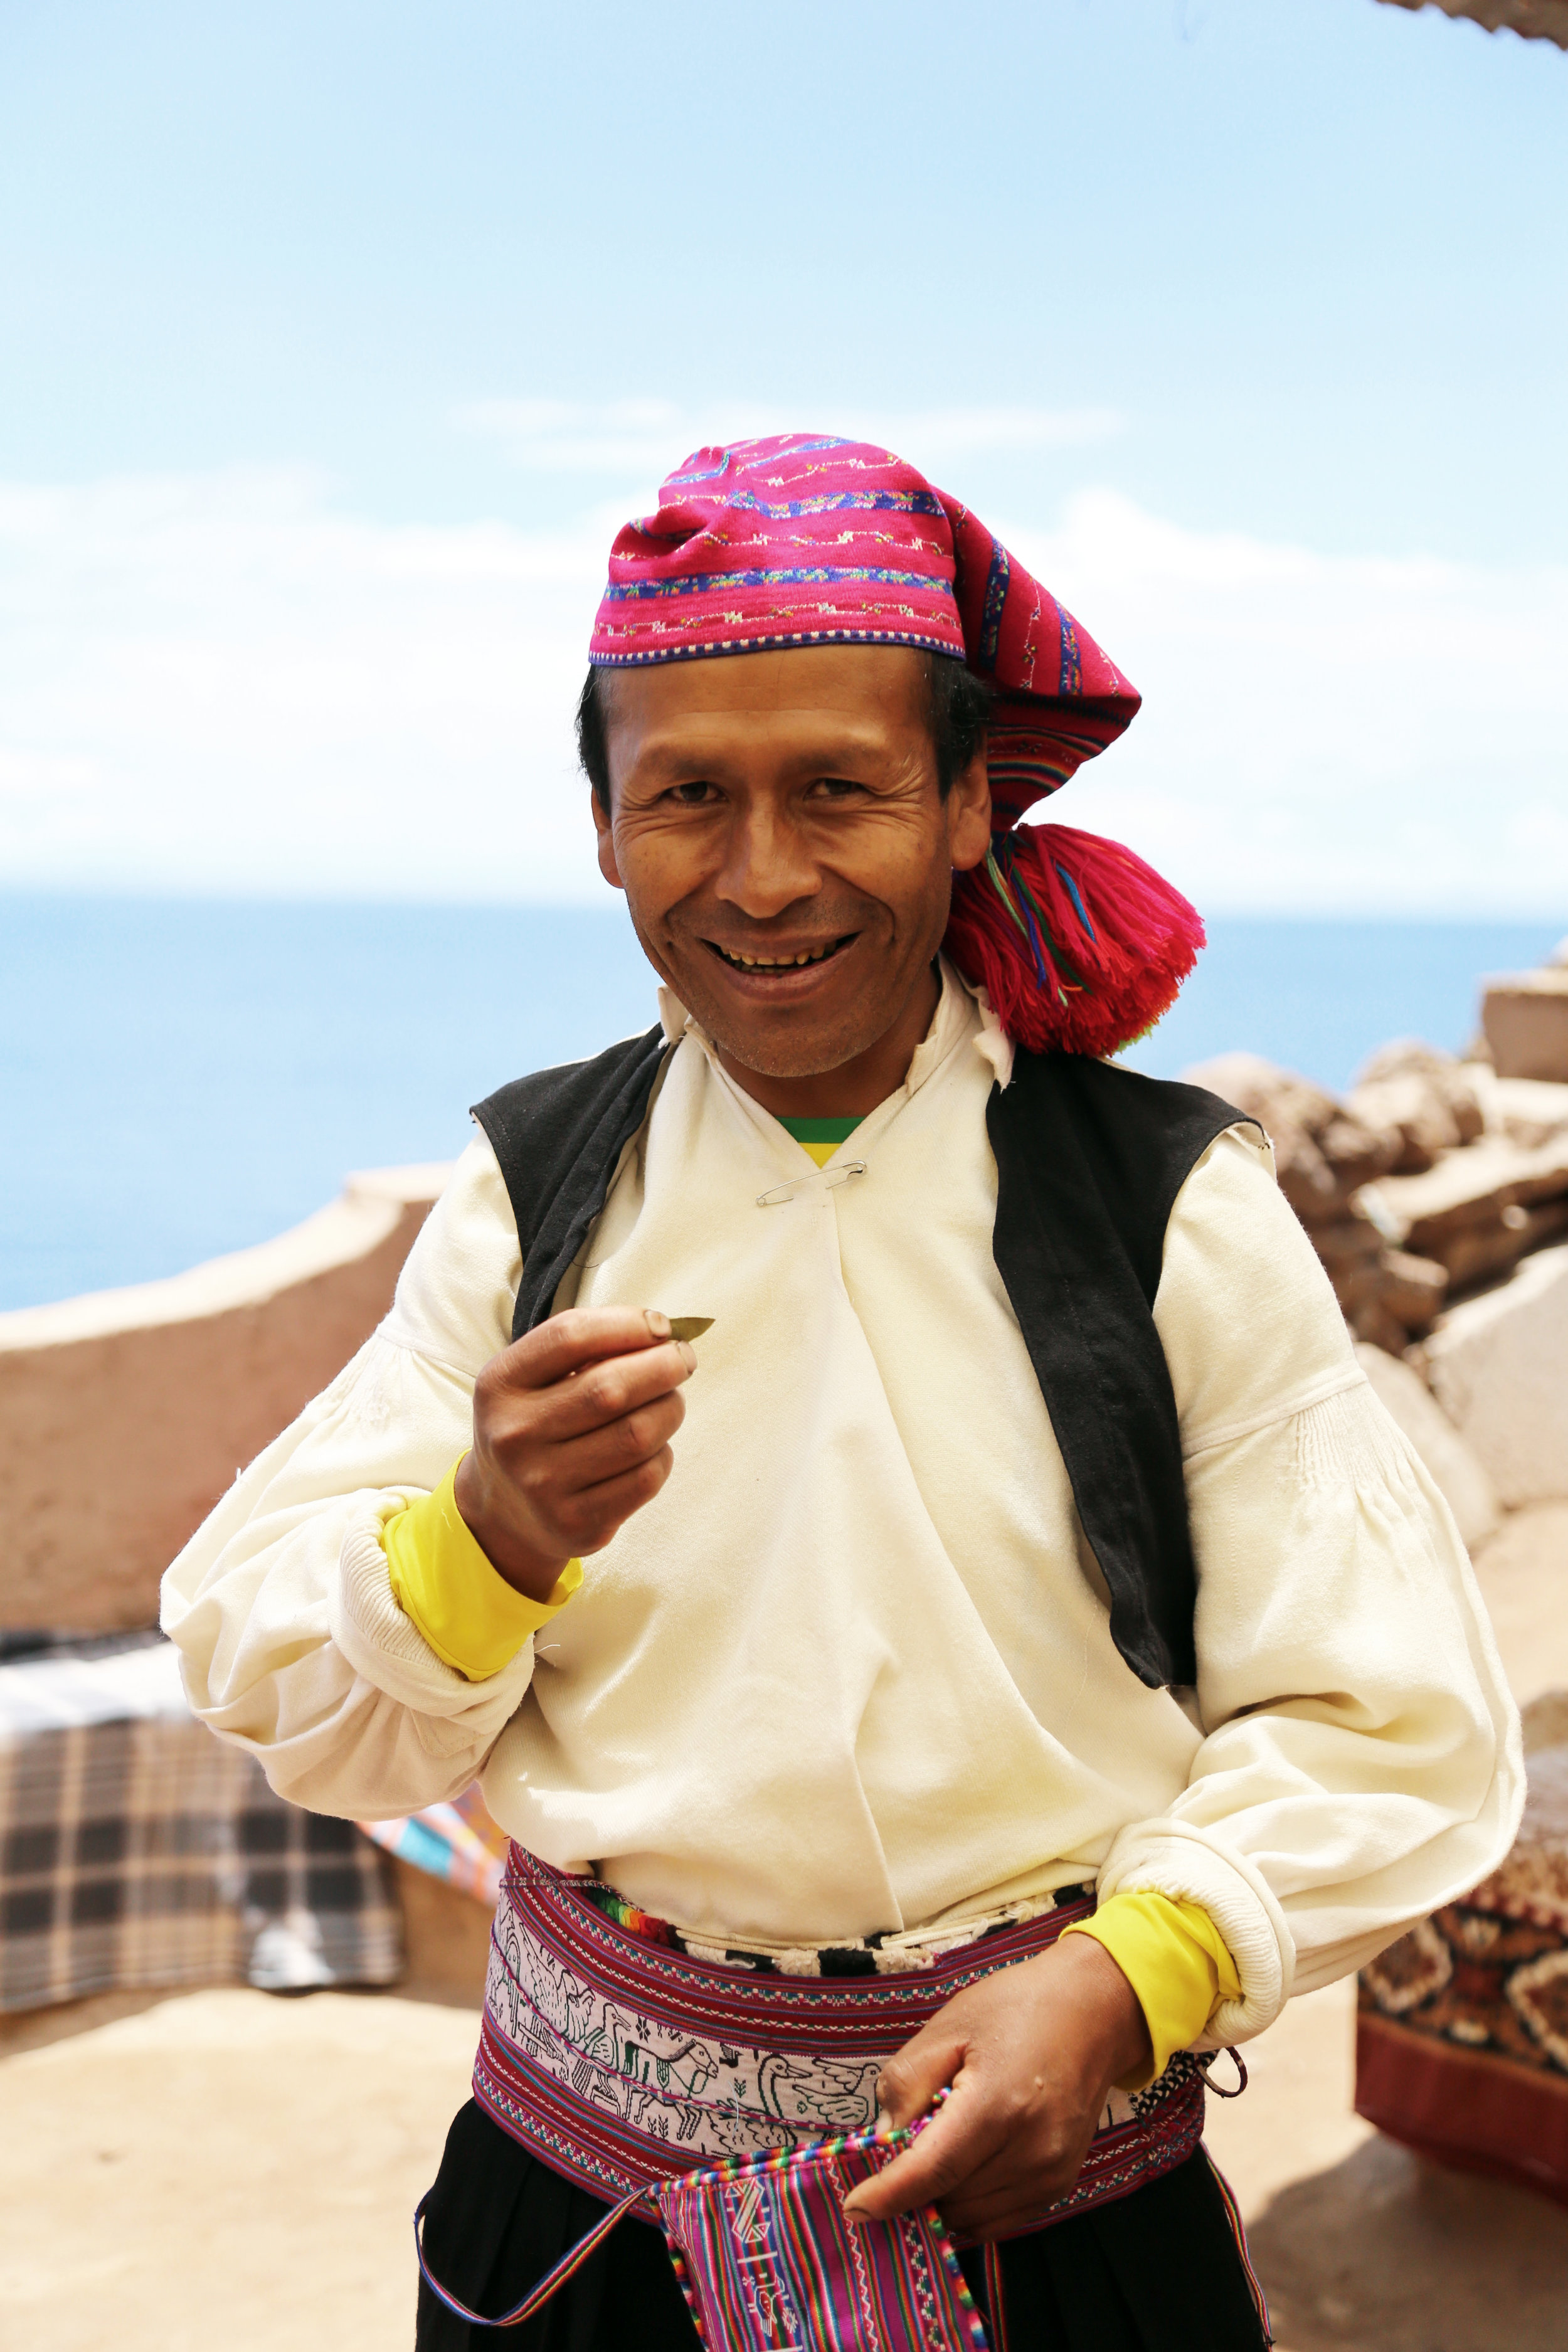 A married man eating coca leaves (yes, the kind that makes cocaine). In Peru coca leaves are a big part of the culture. They are suppose to help with altitude sickness and provide energy.